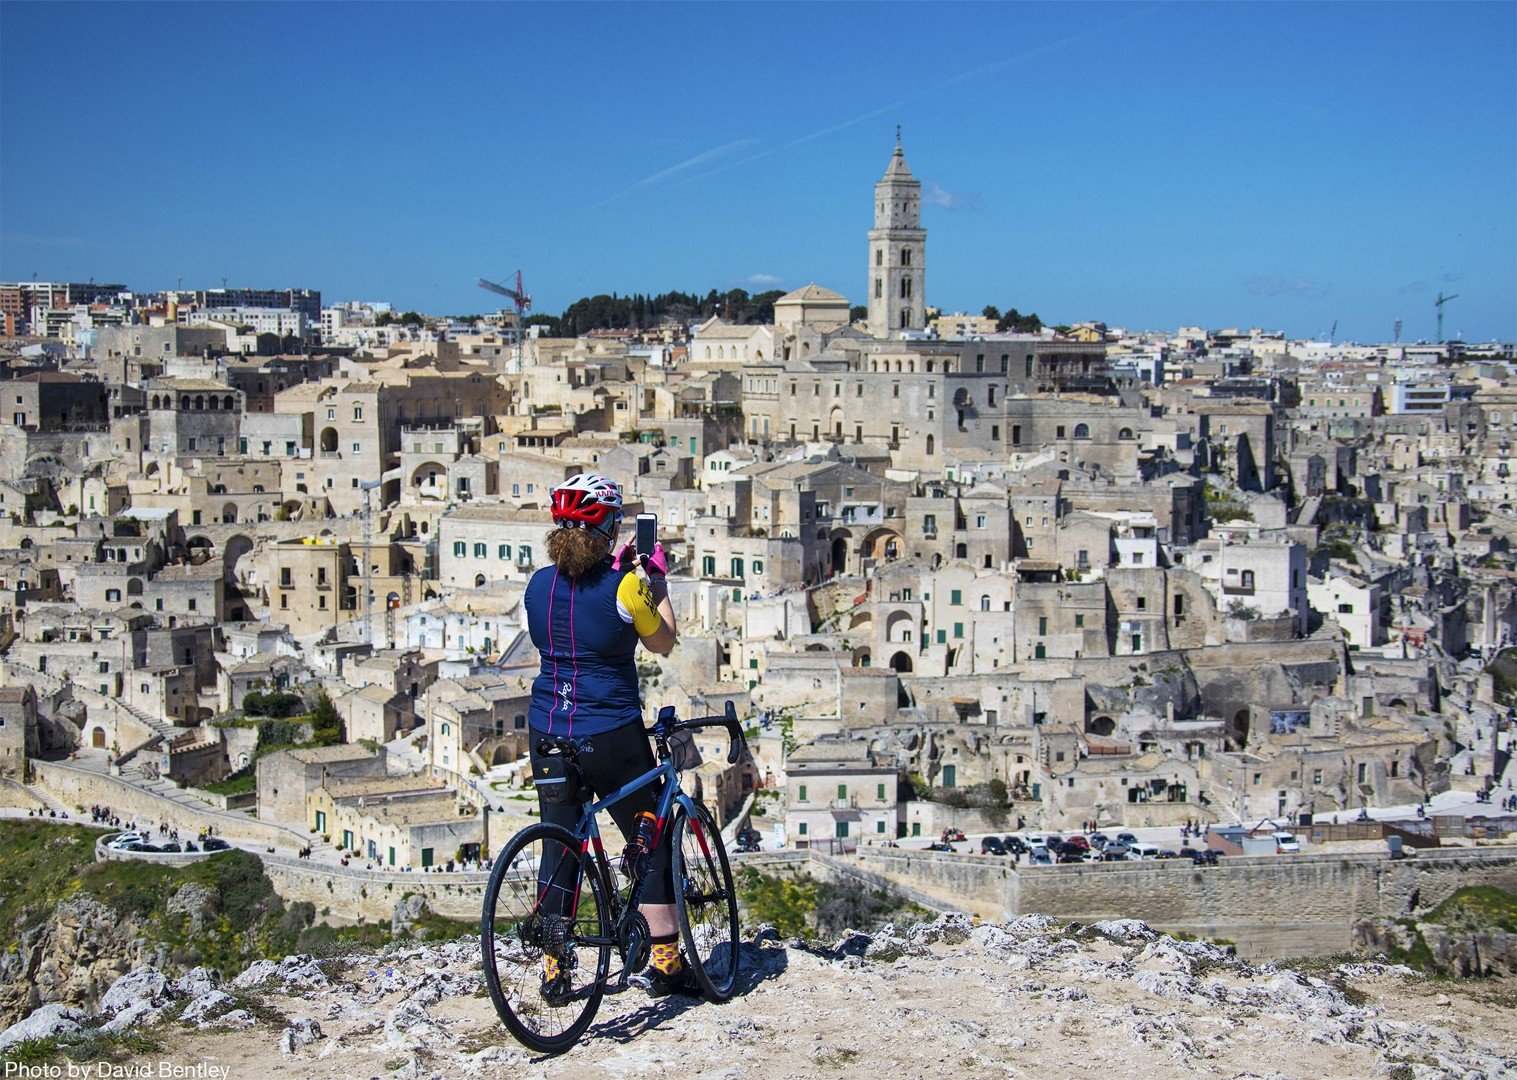 puglia2.jpg - Italy - Puglia - The Beautiful South - Self-Guided Road Cycling Holiday - Road Cycling